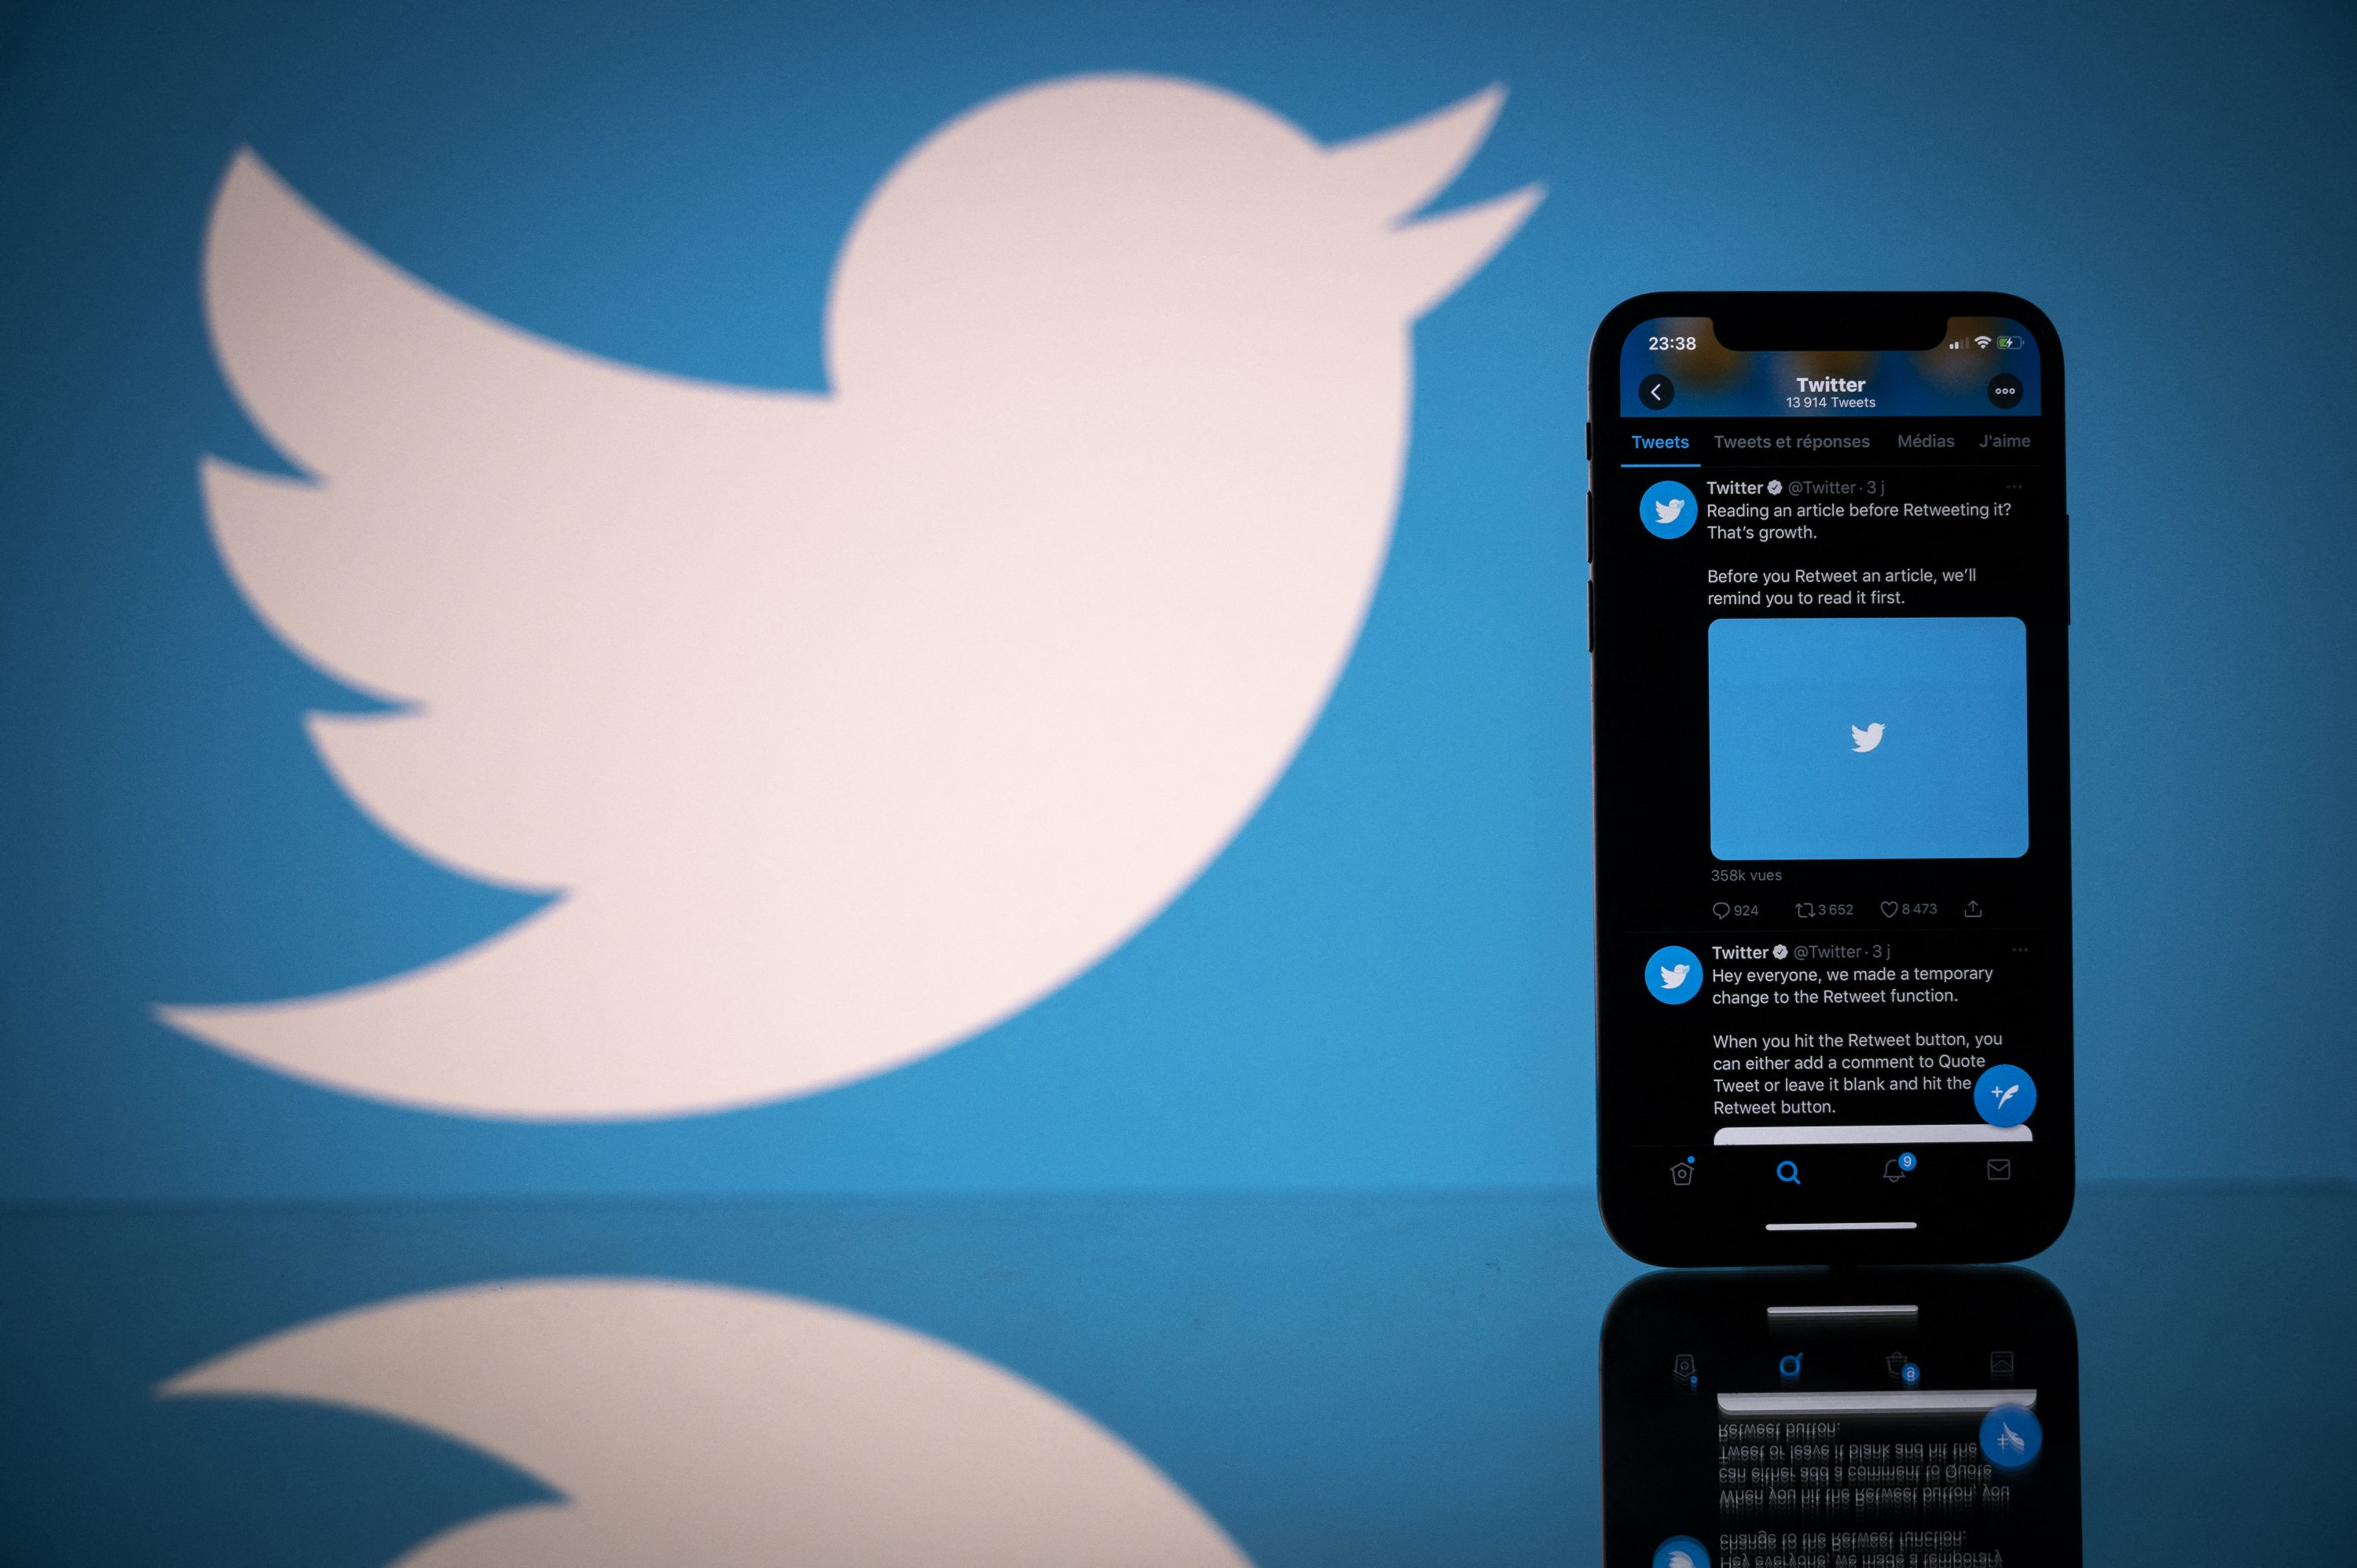 Ameronothrus twitter: New bug discovery proves mite of Twitter